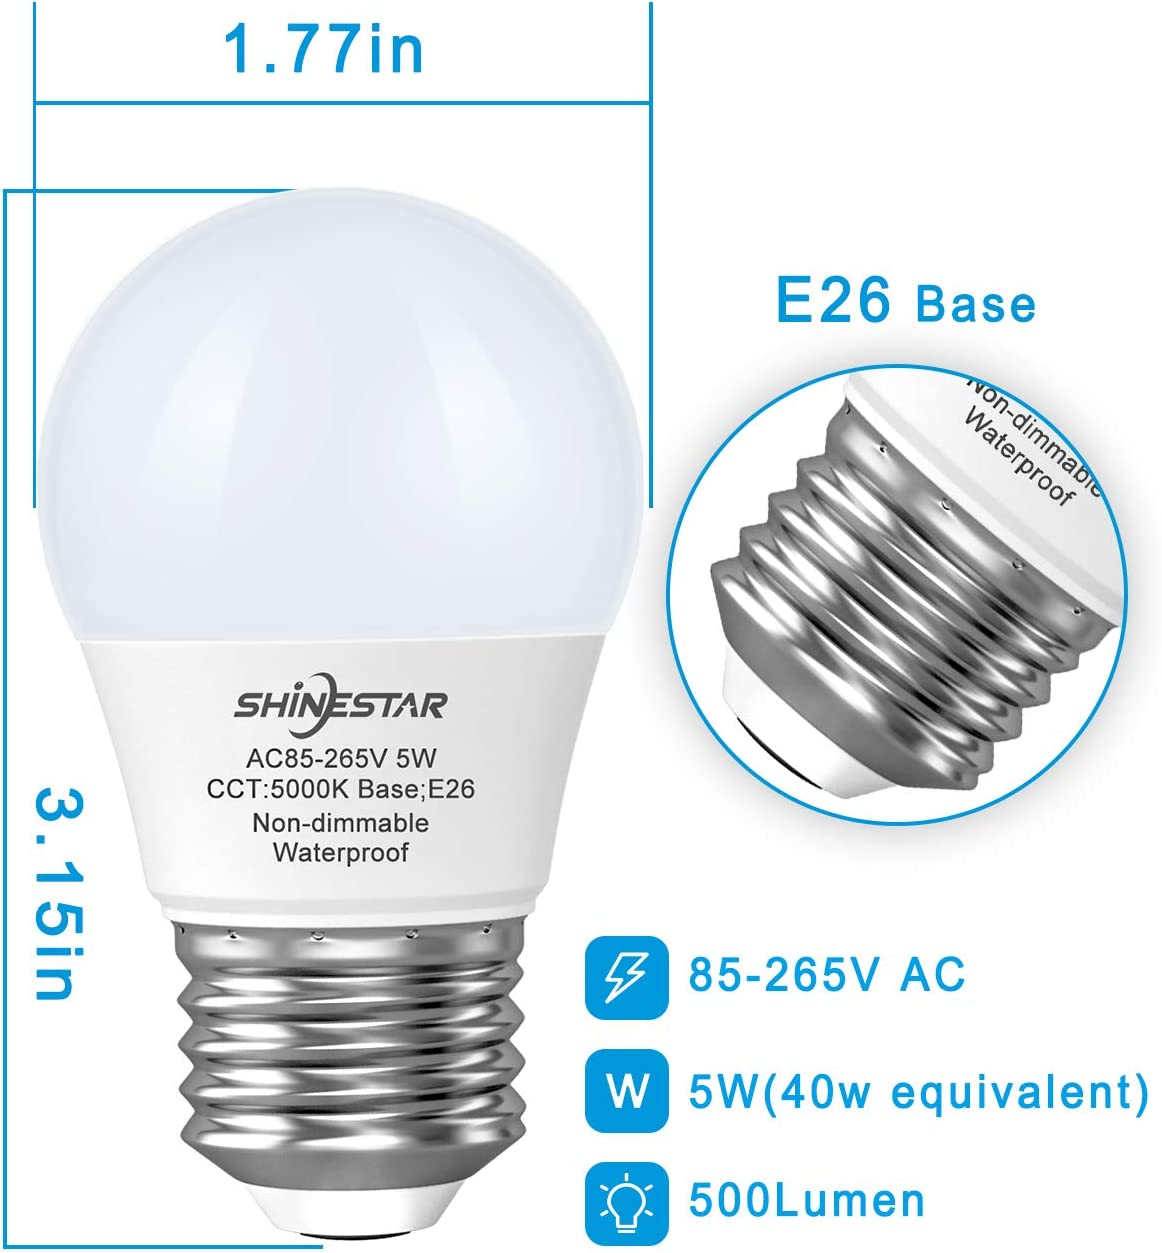 450 Lumen 5W Daylight 5000K E26 Medium Base LED Refrigerator Light Bulb 40W Equivalent A15 Appliance Fridge Bulbs Small Size Bulb Not Dimmable 2-Pack for Damp Location Waterproof